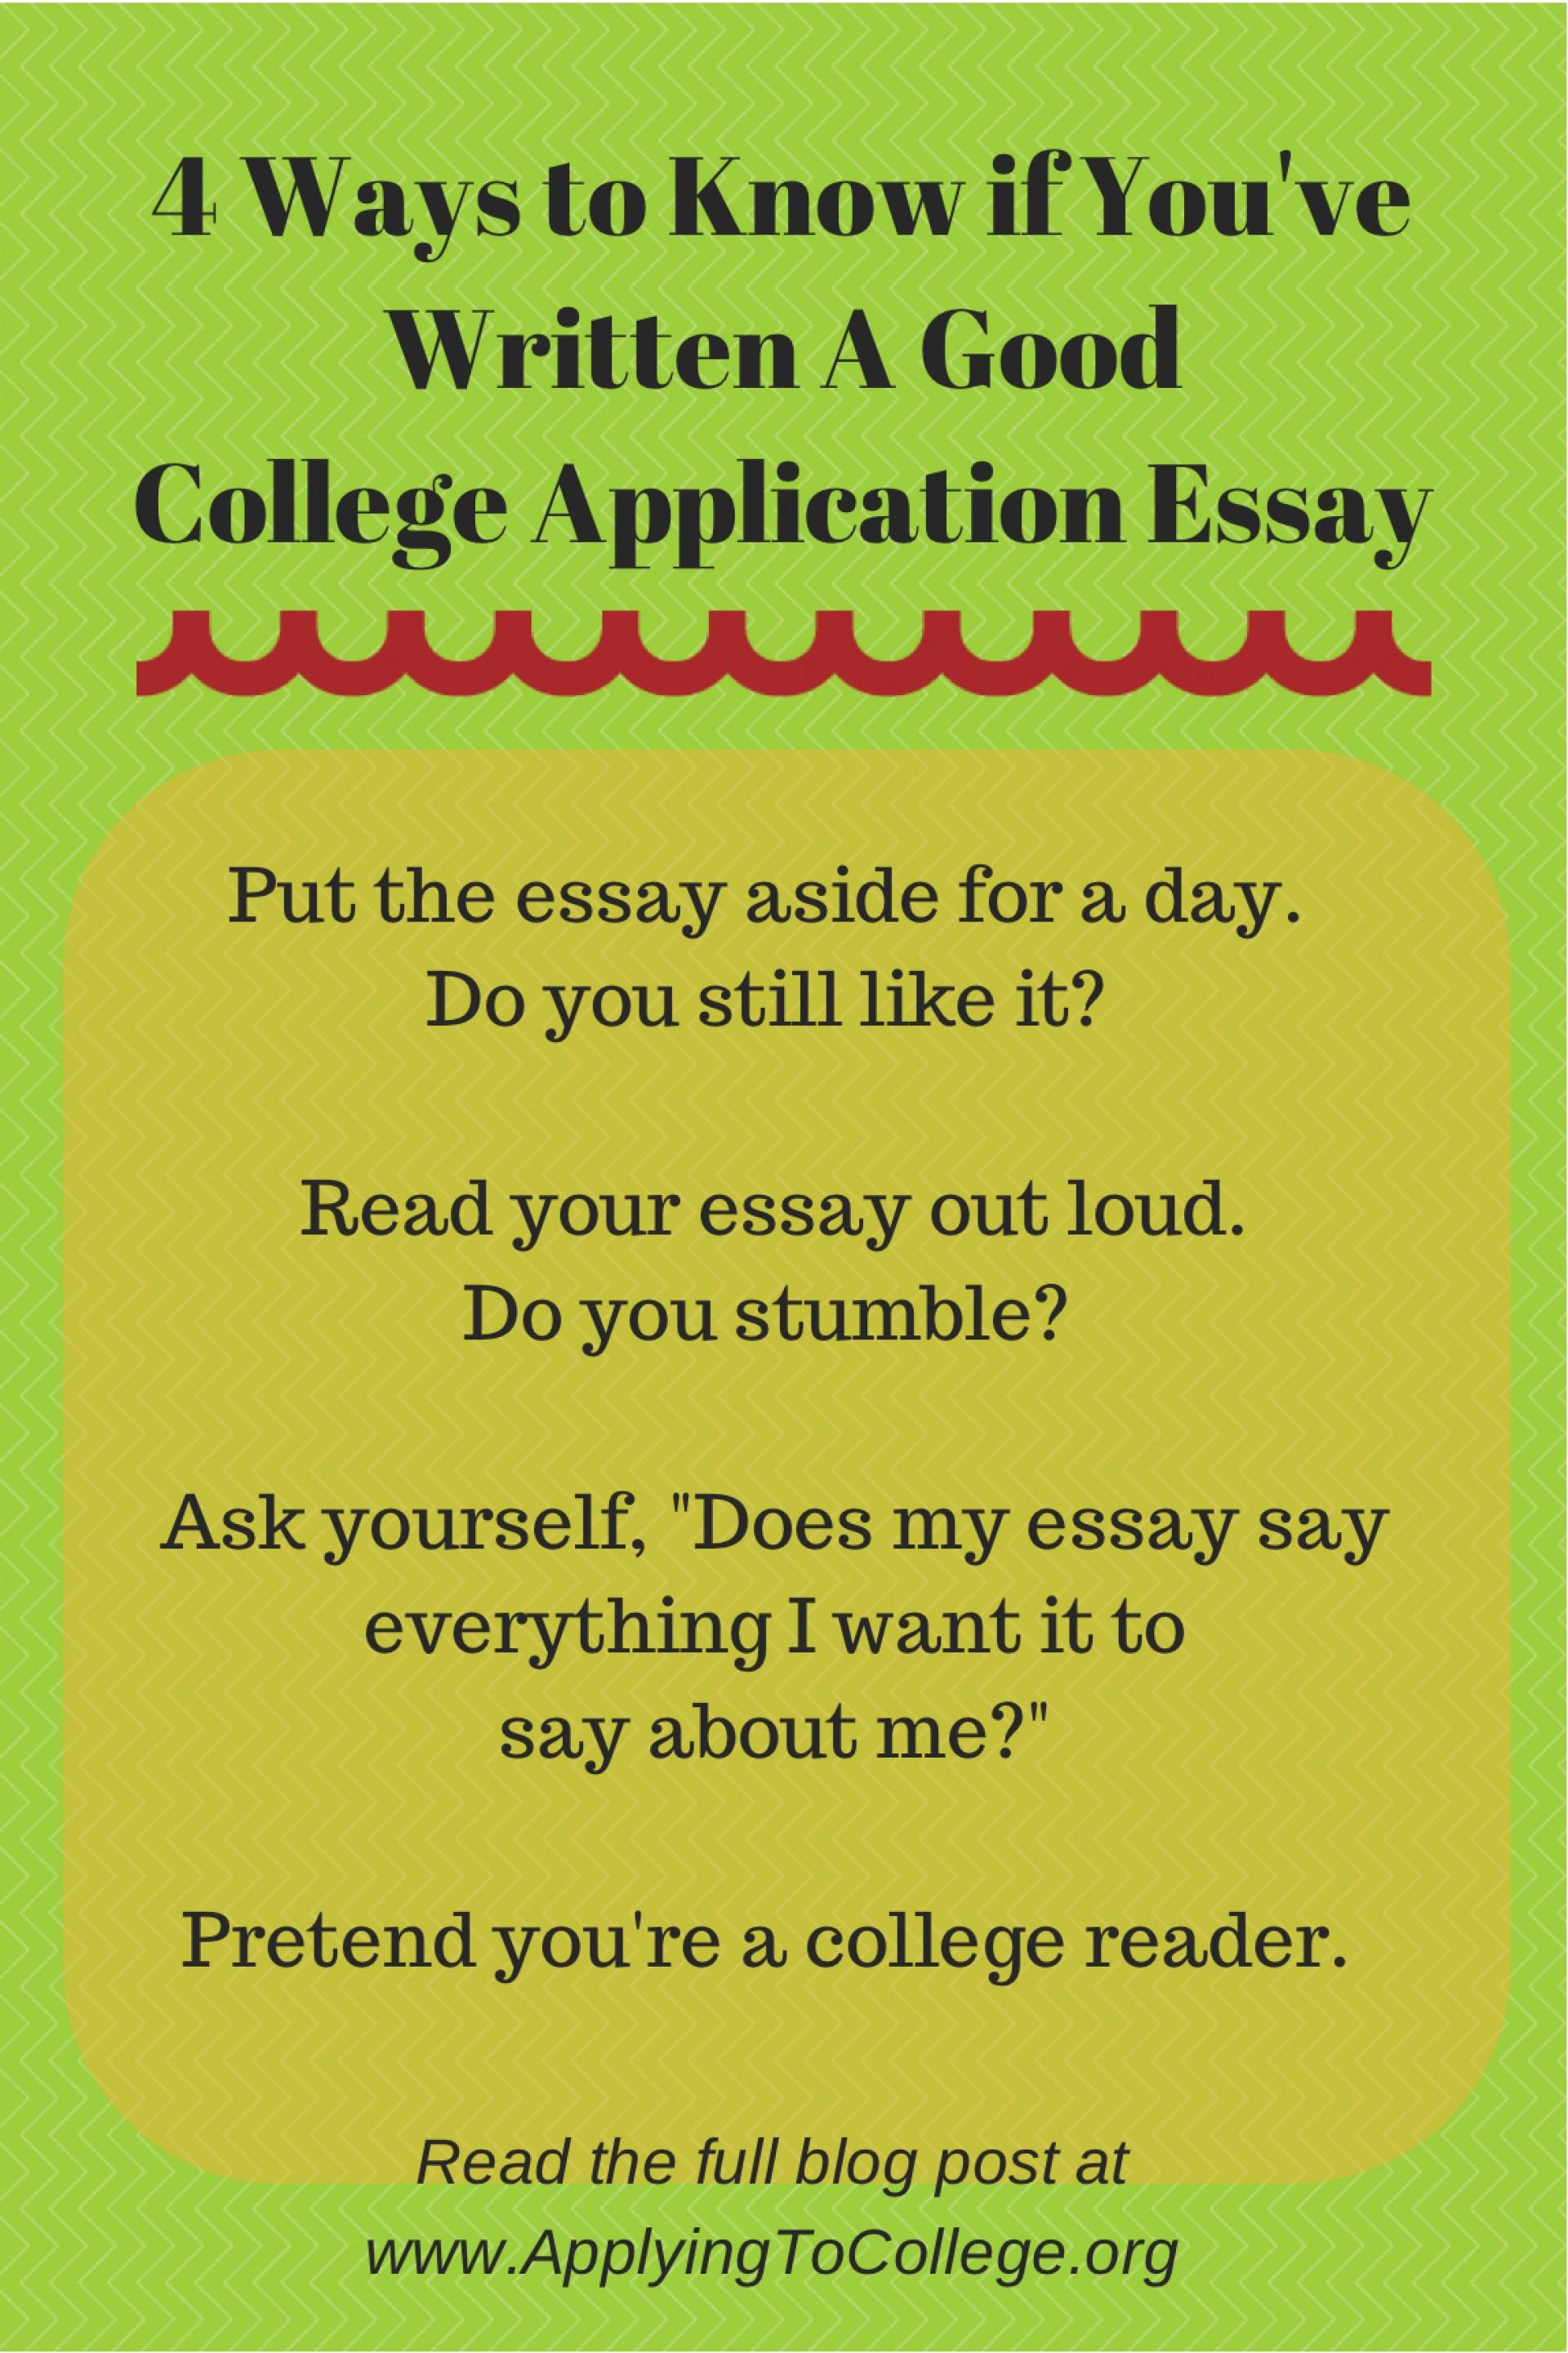 018 Essay Example Help Me Write My 4ways To Know If Youve Written Shocking College For Free App Argumentative 1920